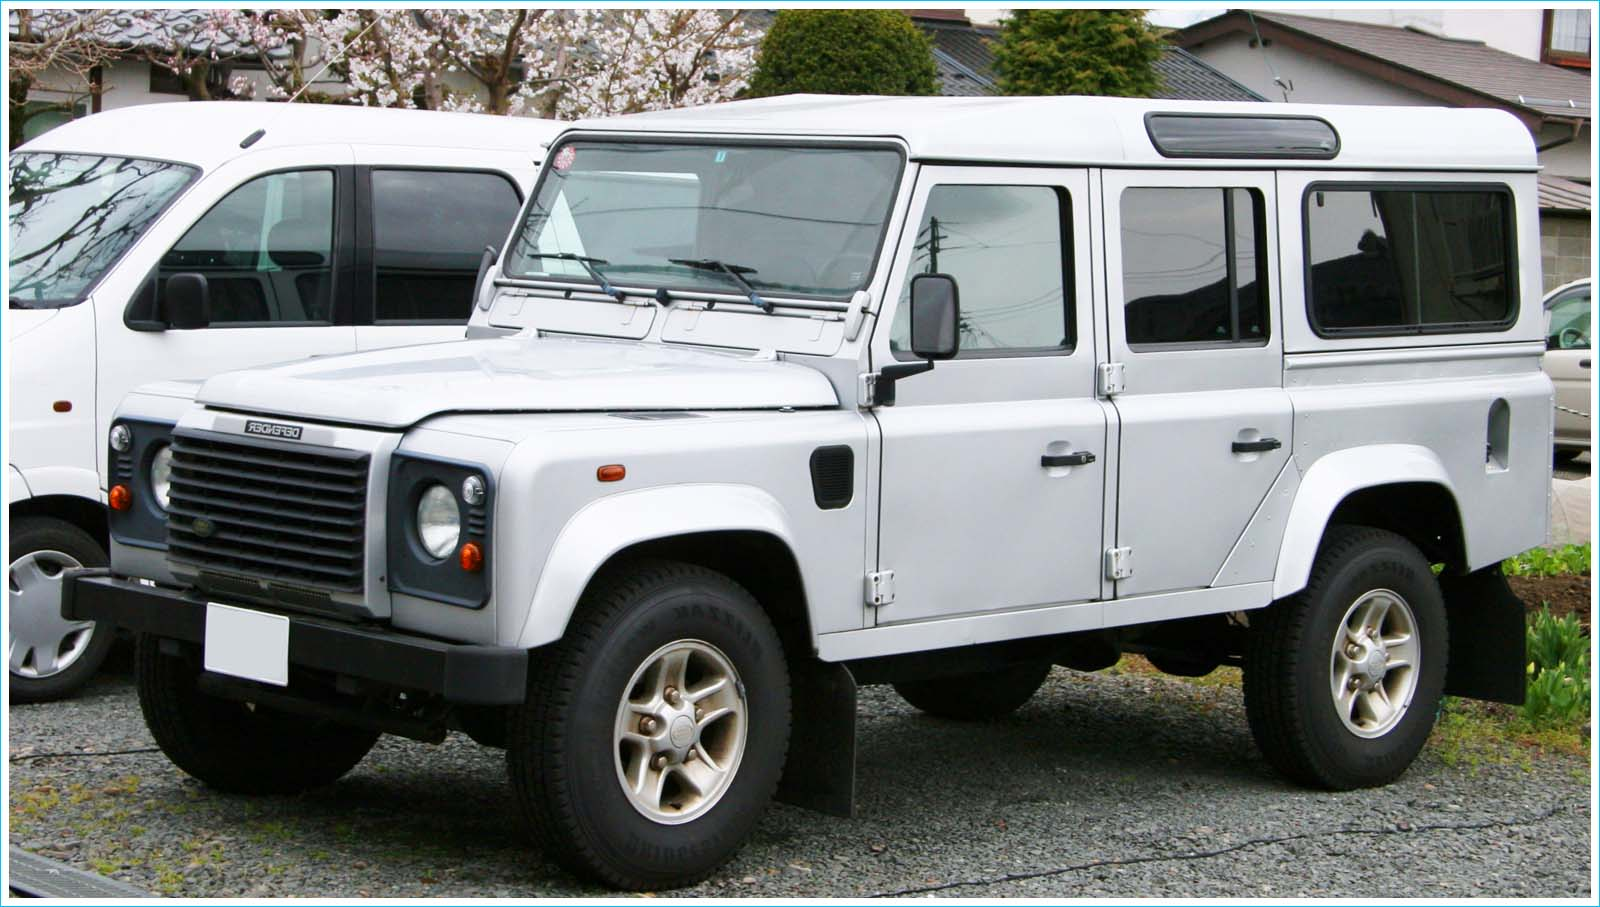 land rover defender 130 pick up photos reviews news specs buy car sexy girl and car photos. Black Bedroom Furniture Sets. Home Design Ideas